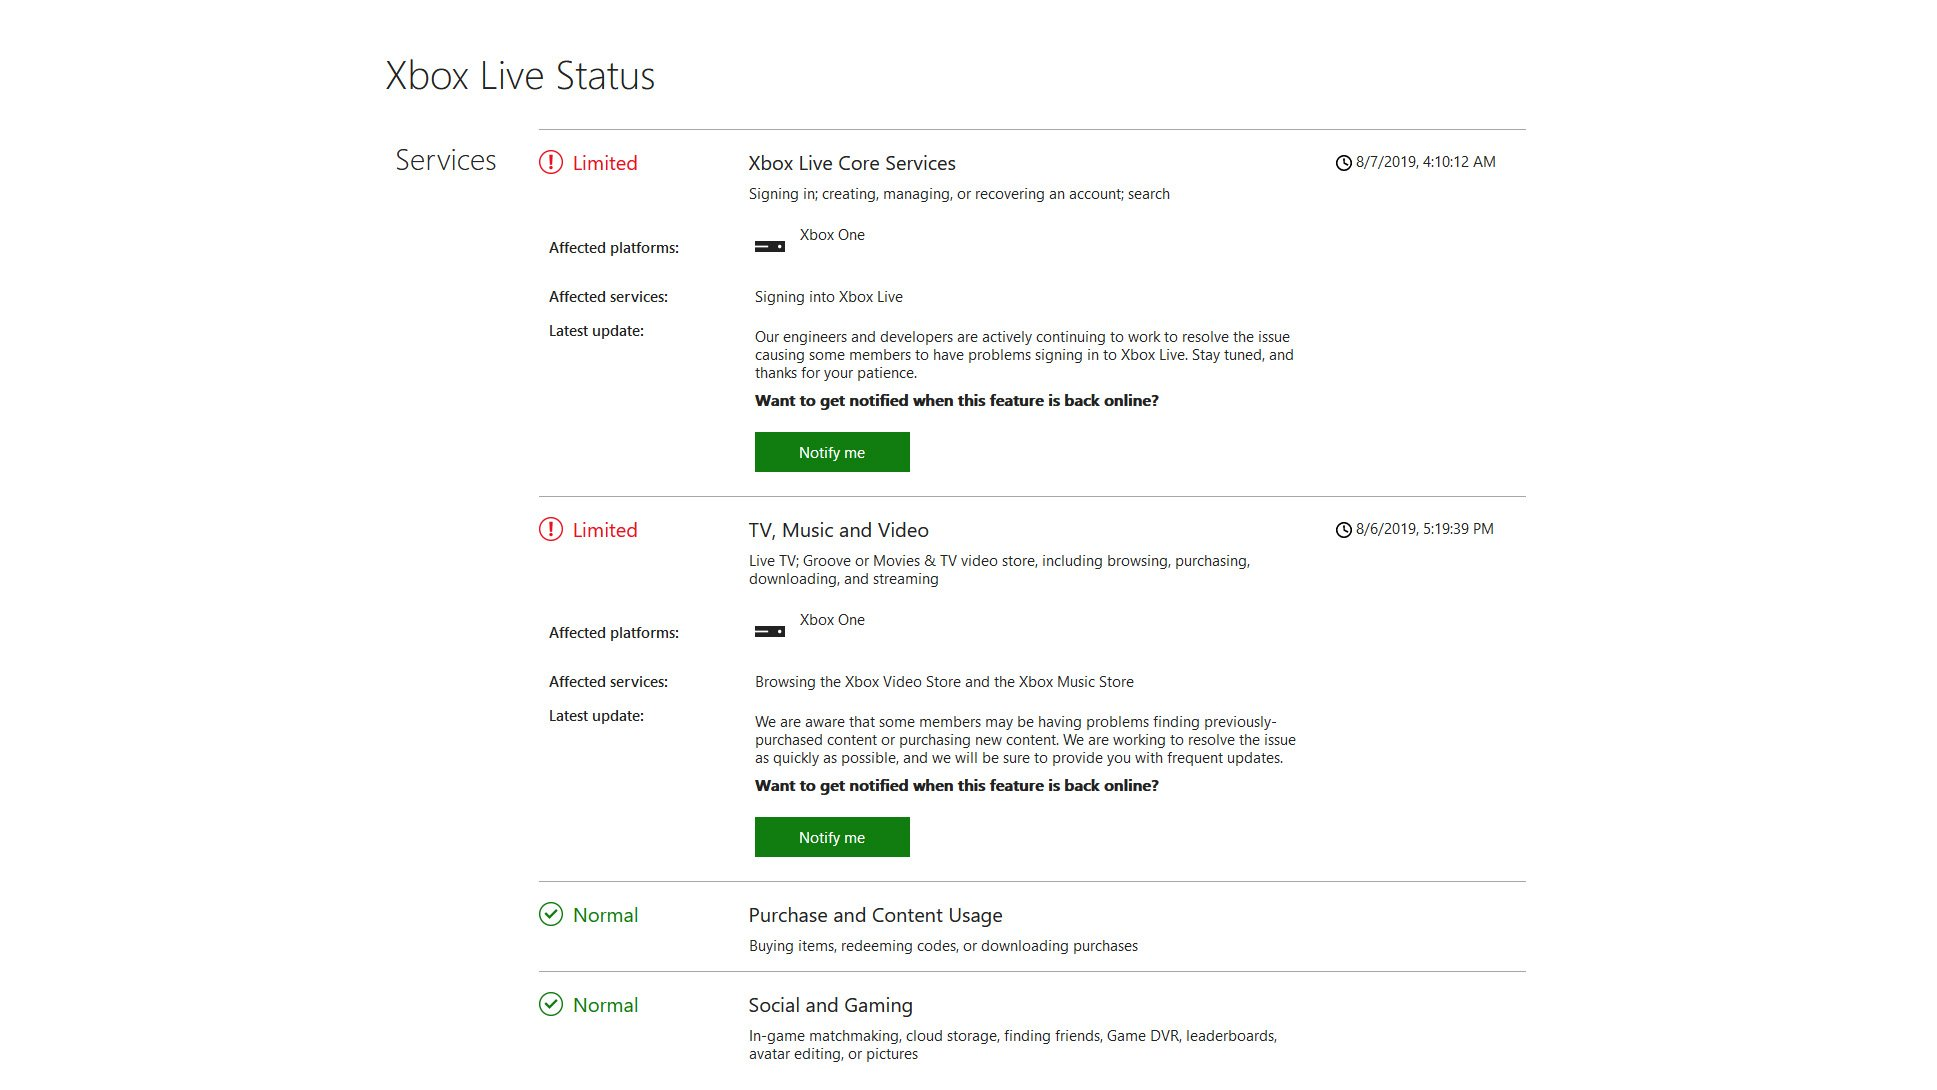 Is Xbox Live down? - How to check Xbox server status